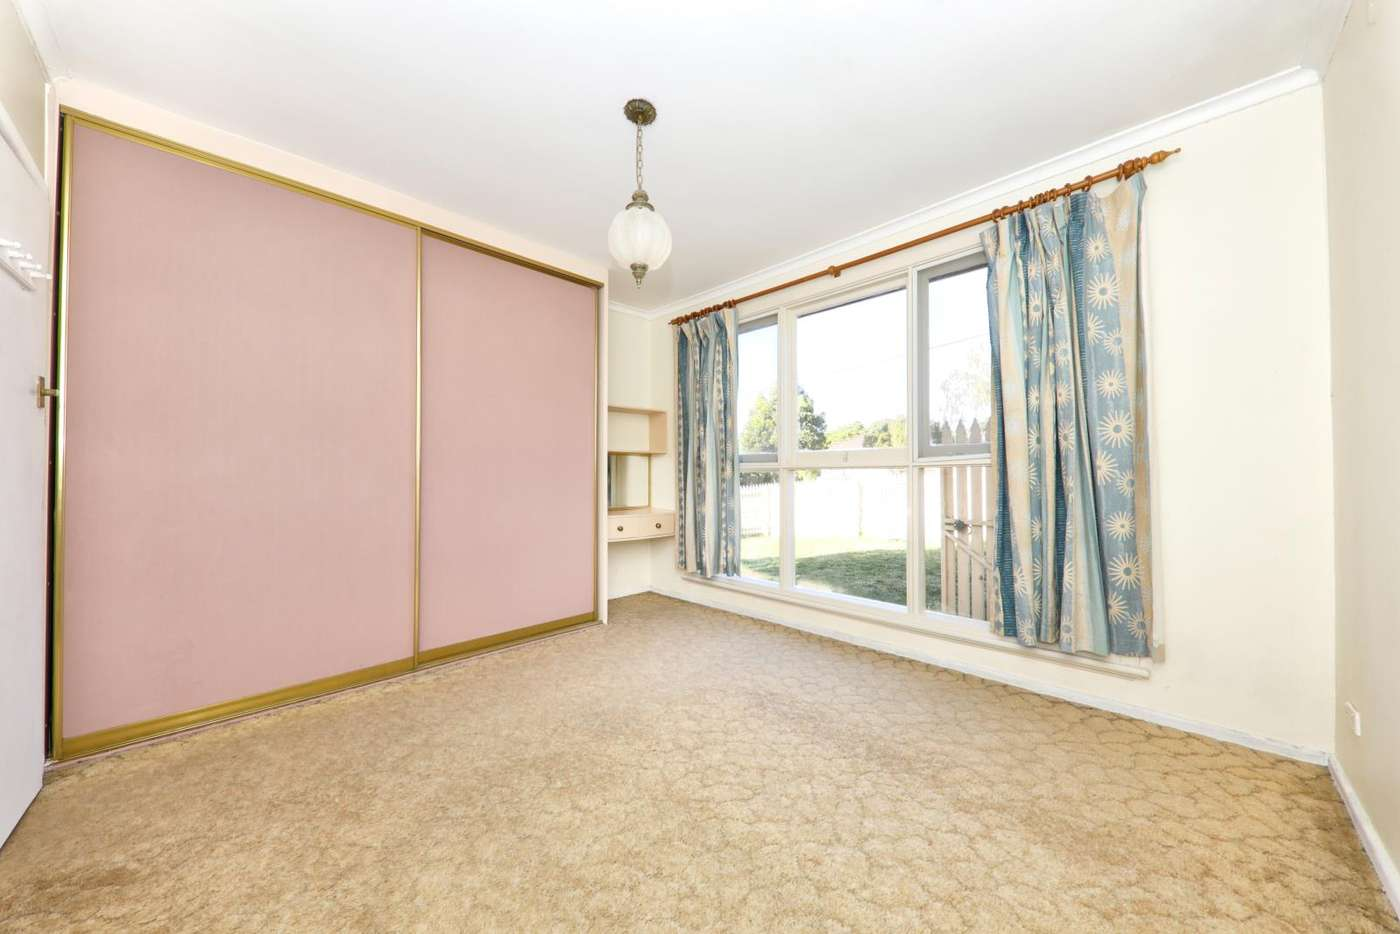 Fifth view of Homely unit listing, 1/21 Munro Ave, Mount Waverley VIC 3149